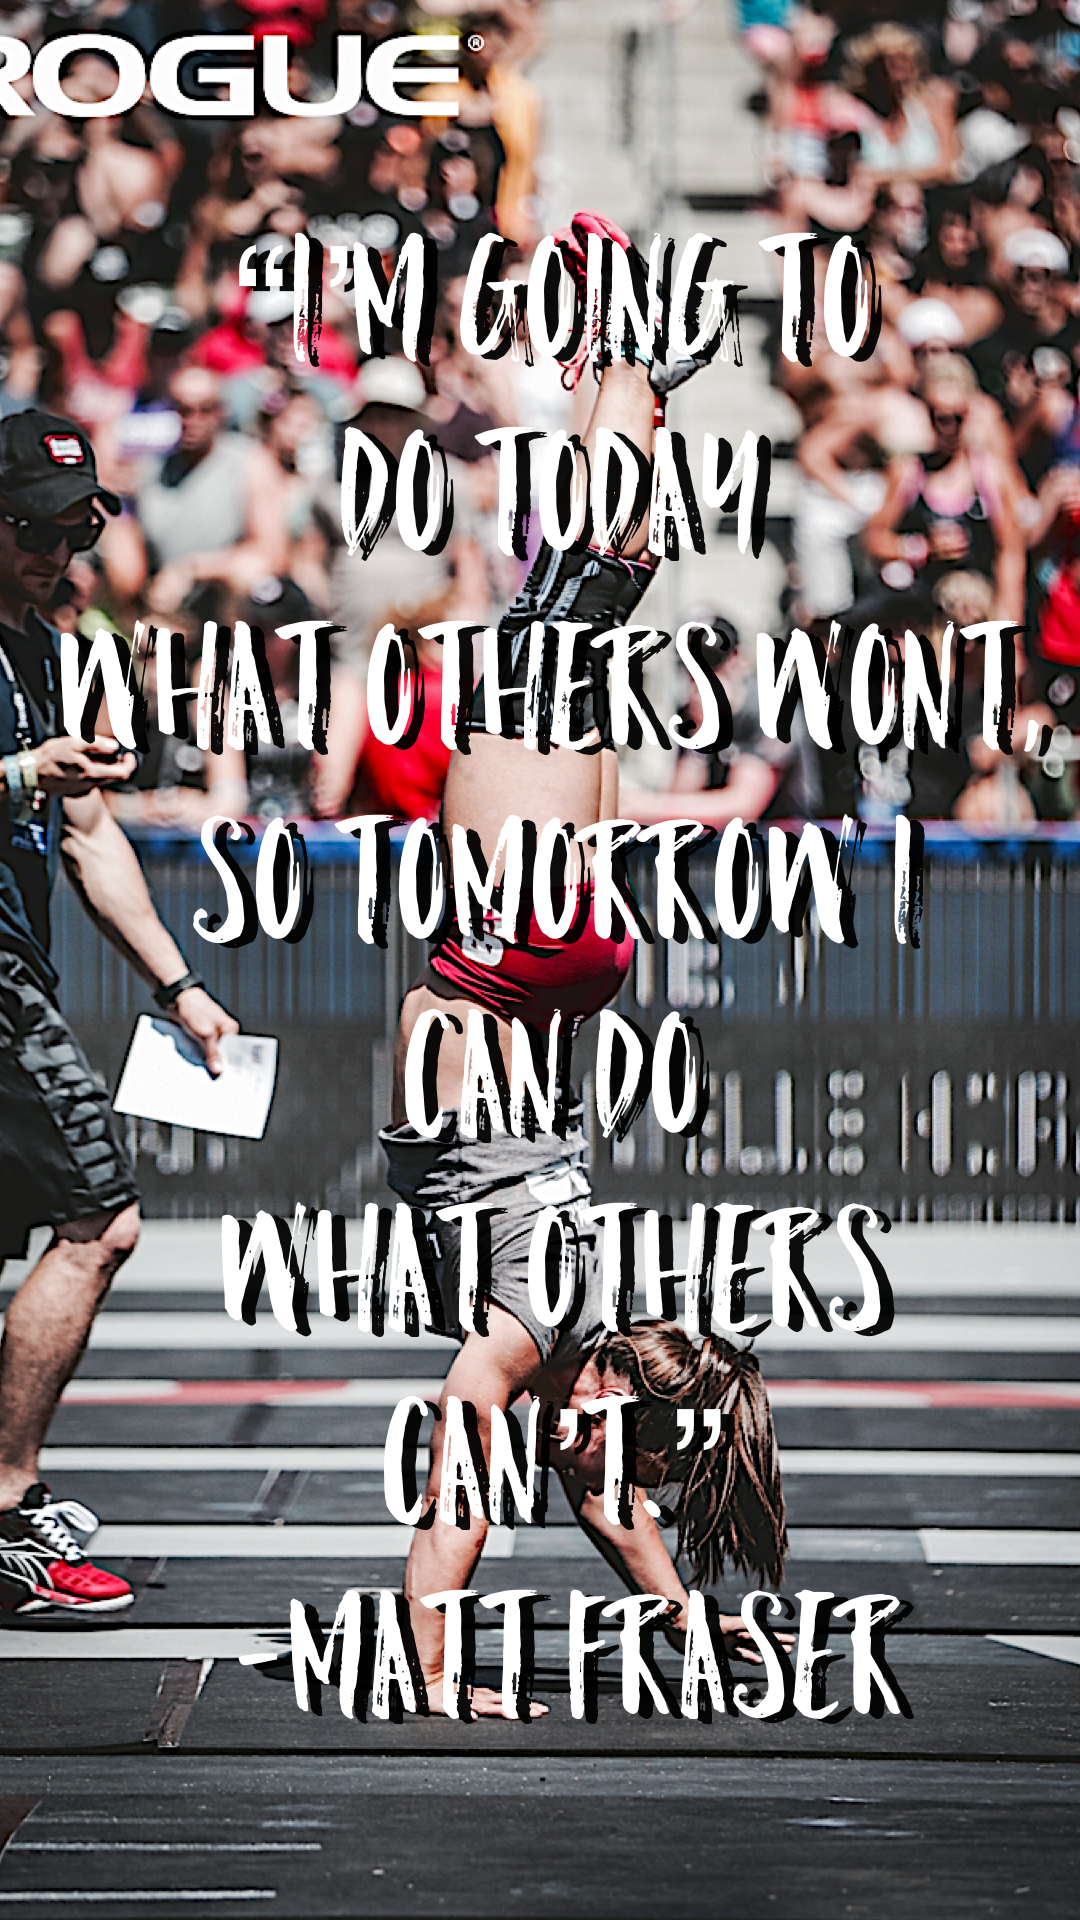 My CrossFit Inspirational Wallpaper Camille Leblanc Bazinet During The 2018 Games And Matt Frasers Quote